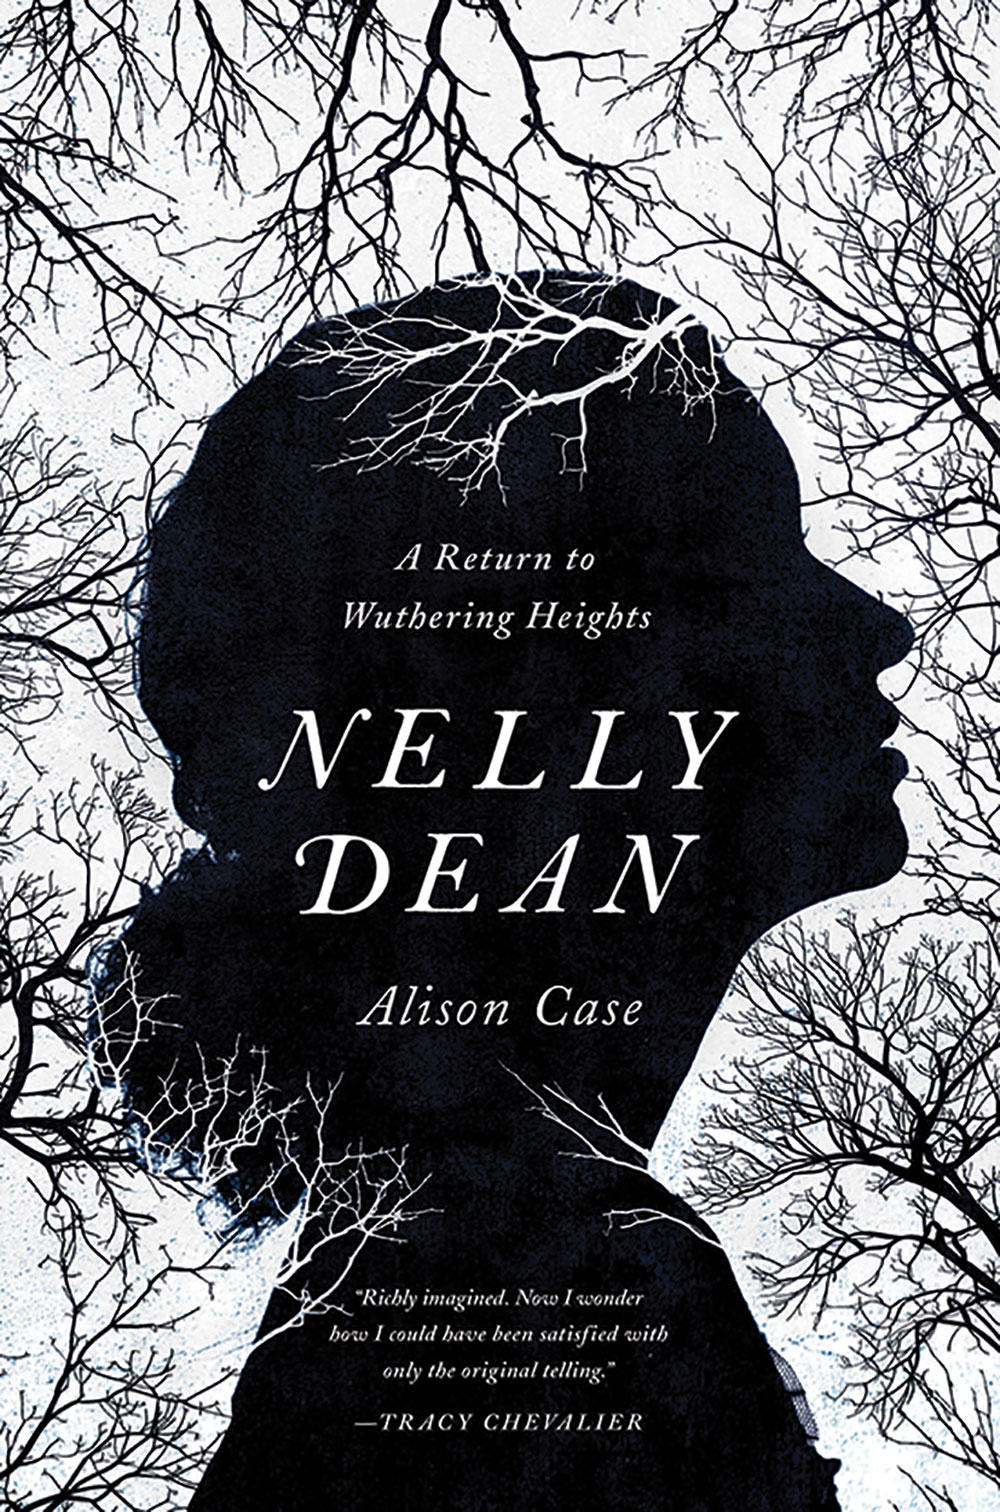 Image result for nelly dean book cover